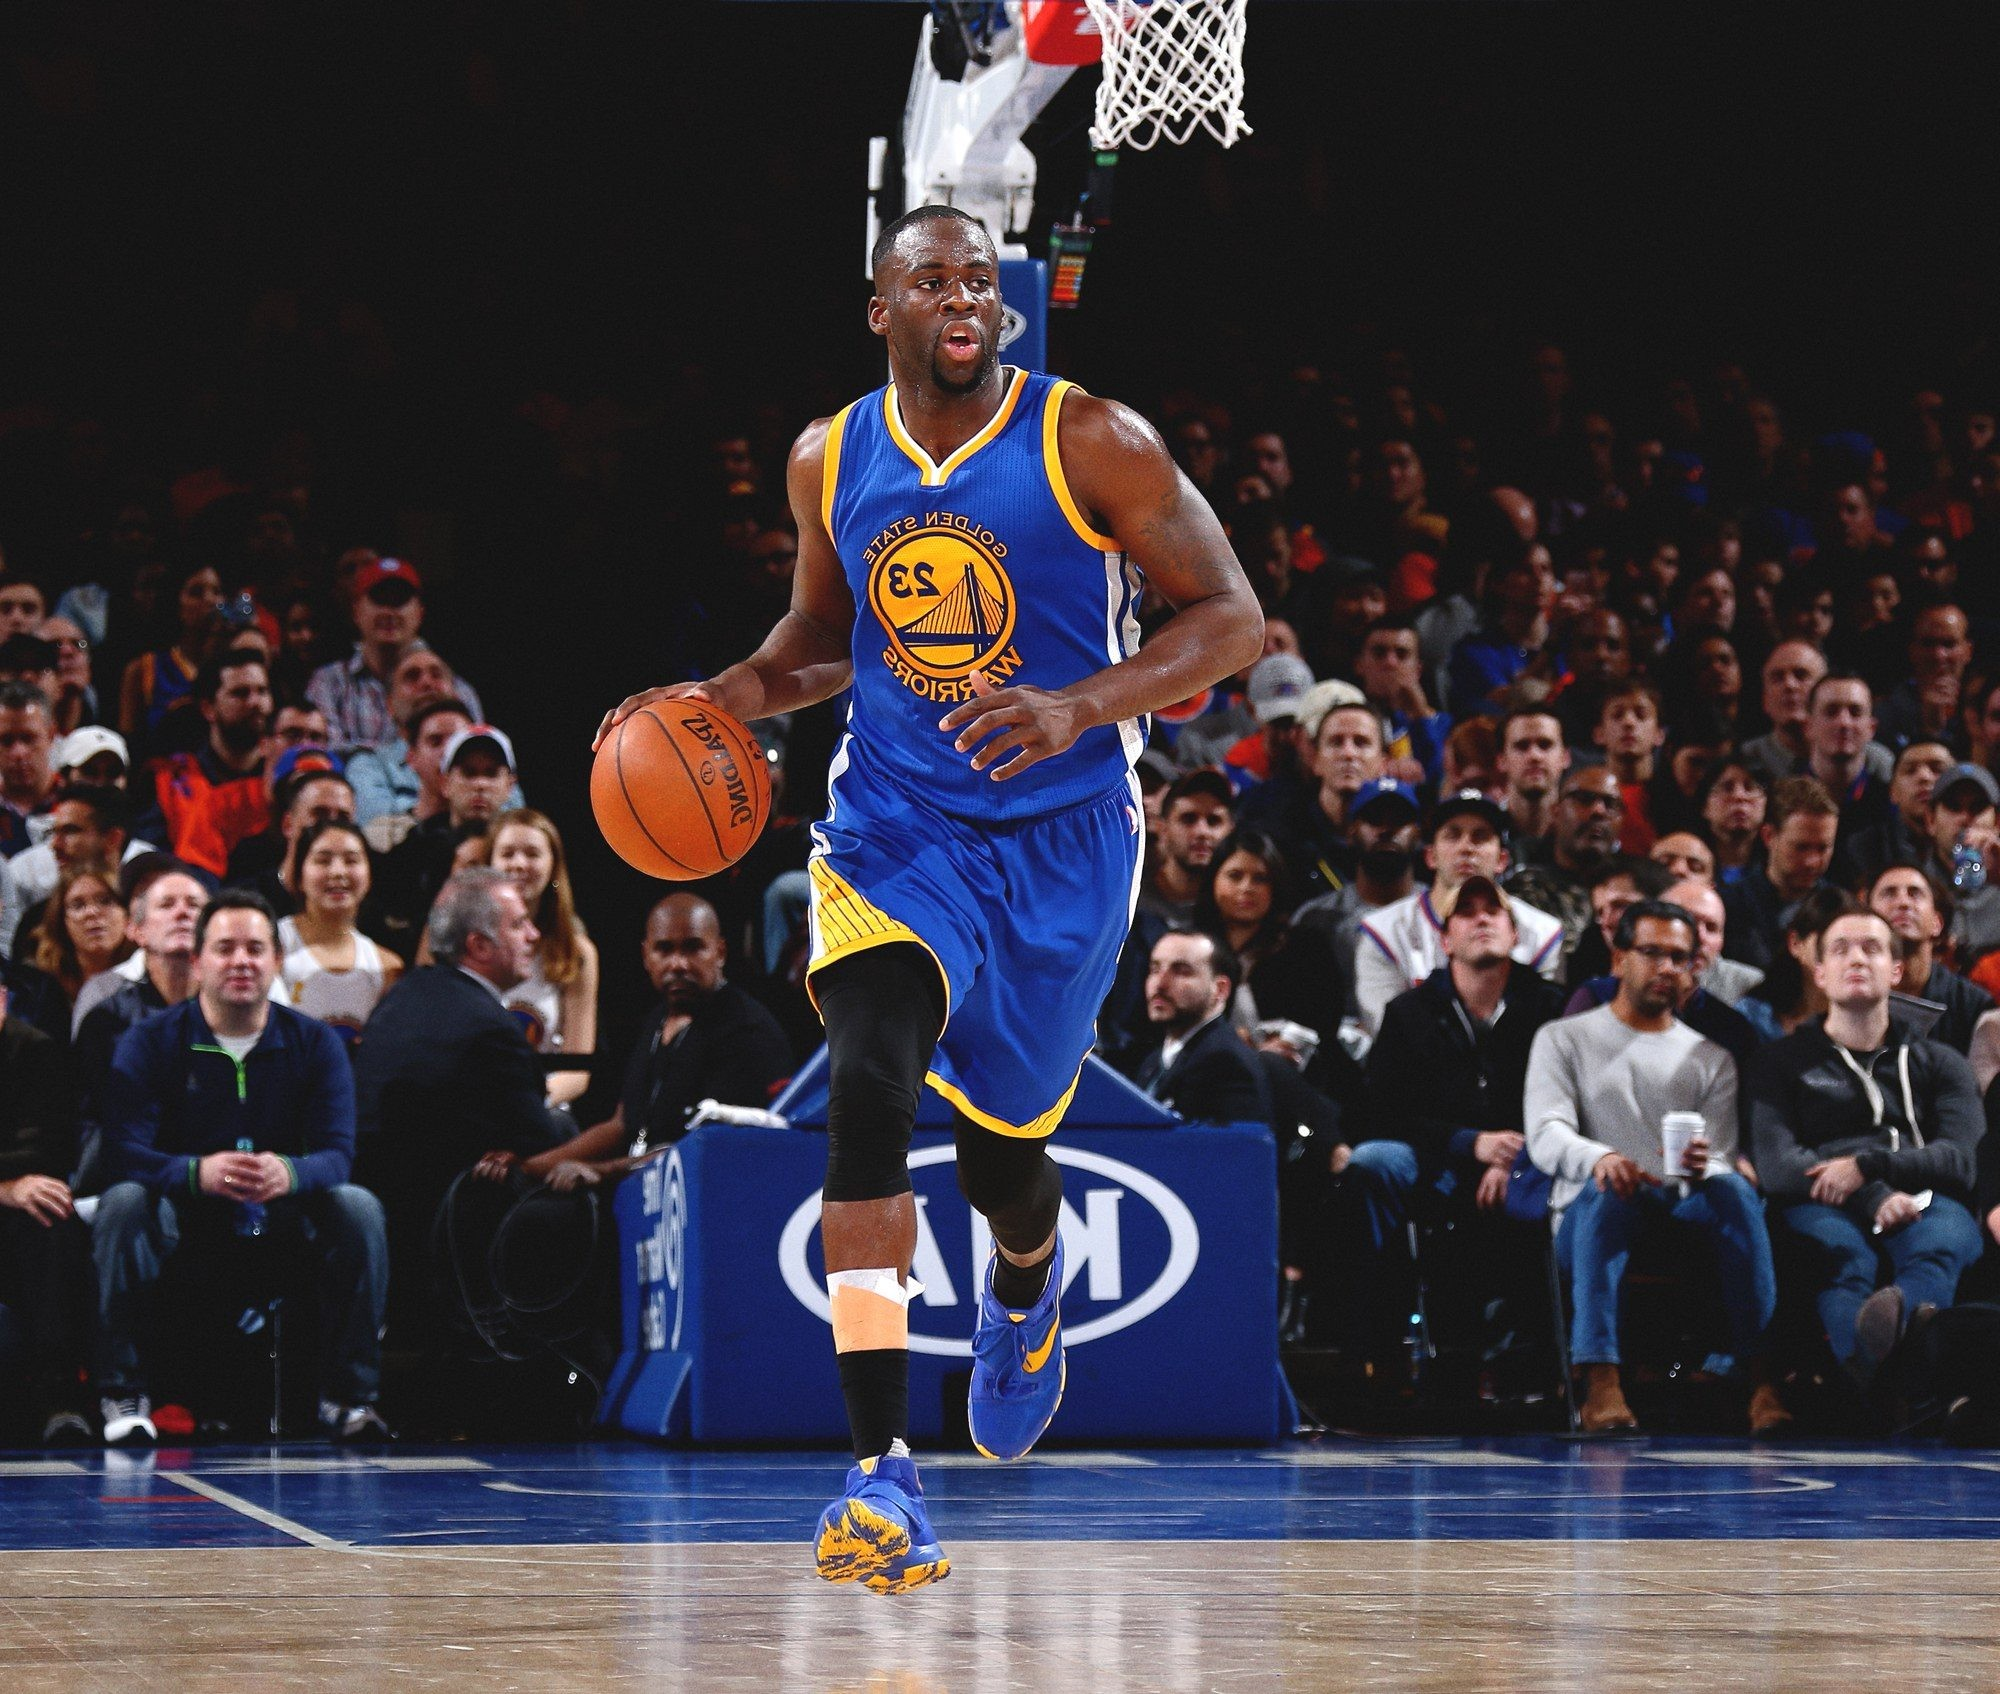 2000x1694 Draymond Green amazing wallpaper Free - Download Draymond Green .